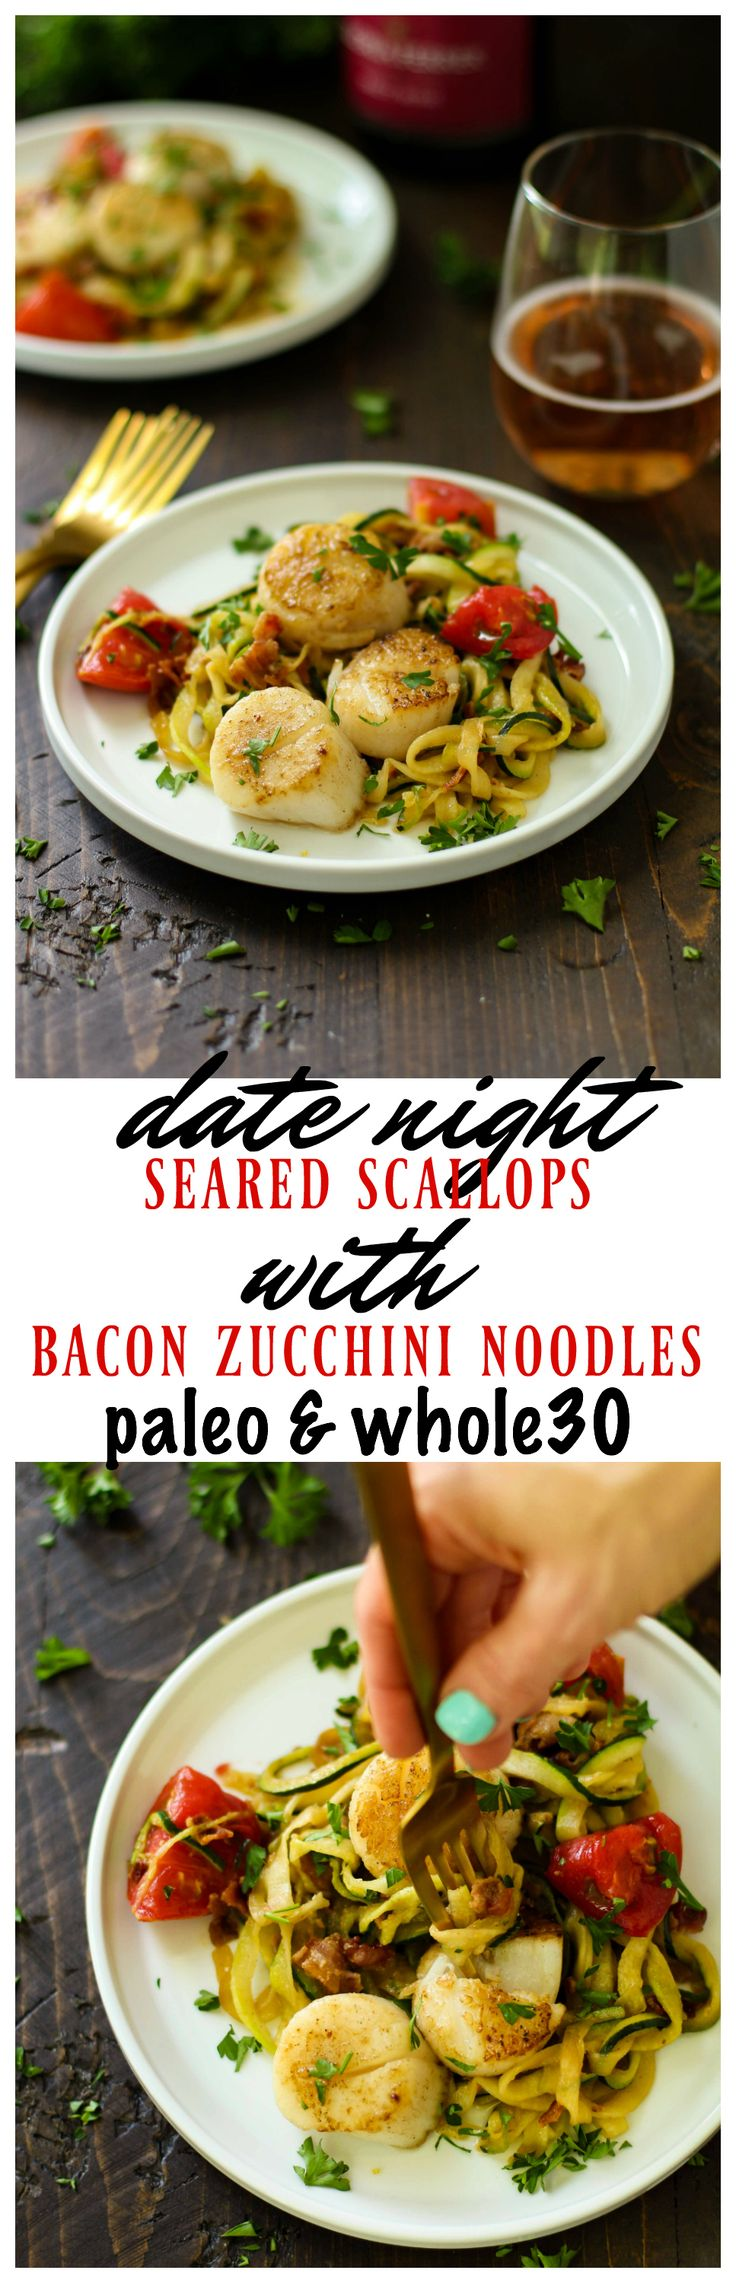 The absolute most perfect date night meal – Seared Scallops with Bacon Zucchini Noodles. It's a little bit of fancy with a huge amount of flavor and so super easy to cook up. Pair it w/ Gloria Ferrer Caves & Vineyards and go ga-ga over this healthy, cozy meal! #GloriaFerrer #CLVR #AD